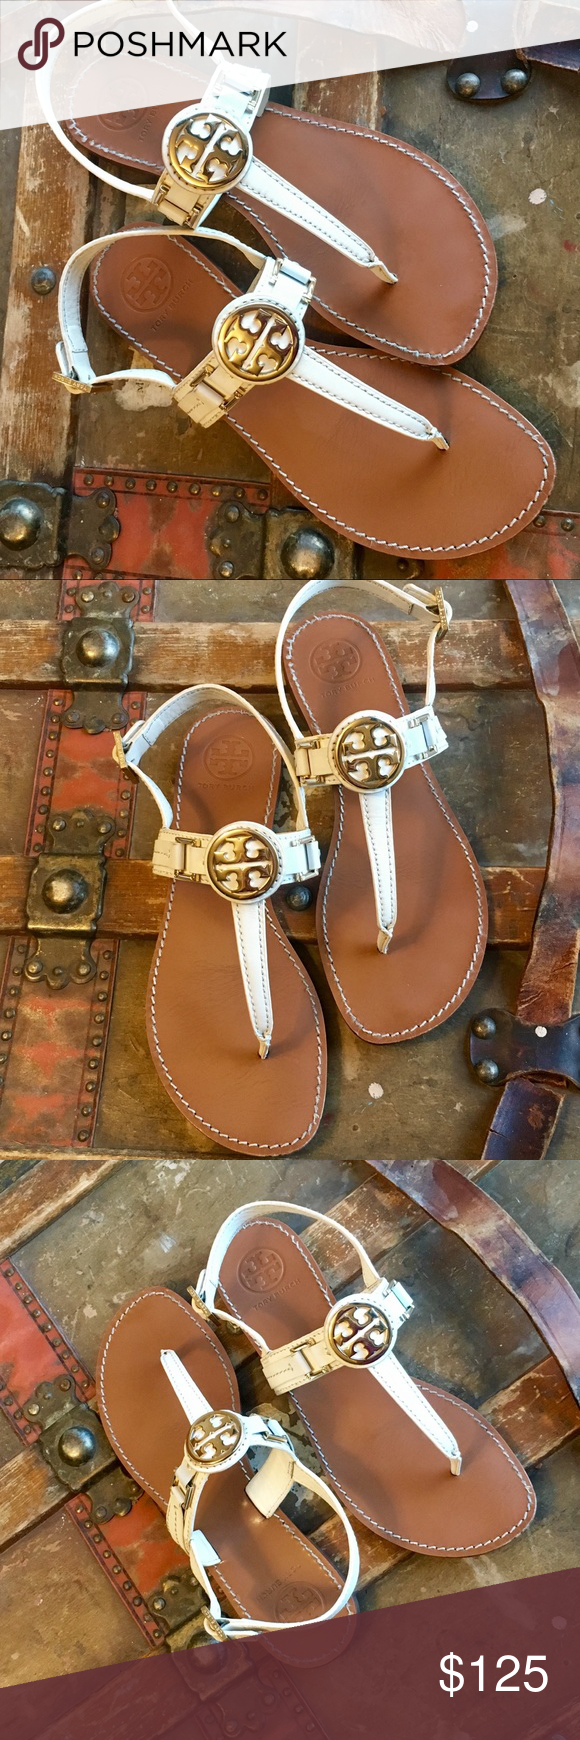 065698b4b168 Tory Burch Cassia   Bryce Sandals white 8.5 Miller Gorgeous Tory Burch  Cassia Flat Thong Sandals